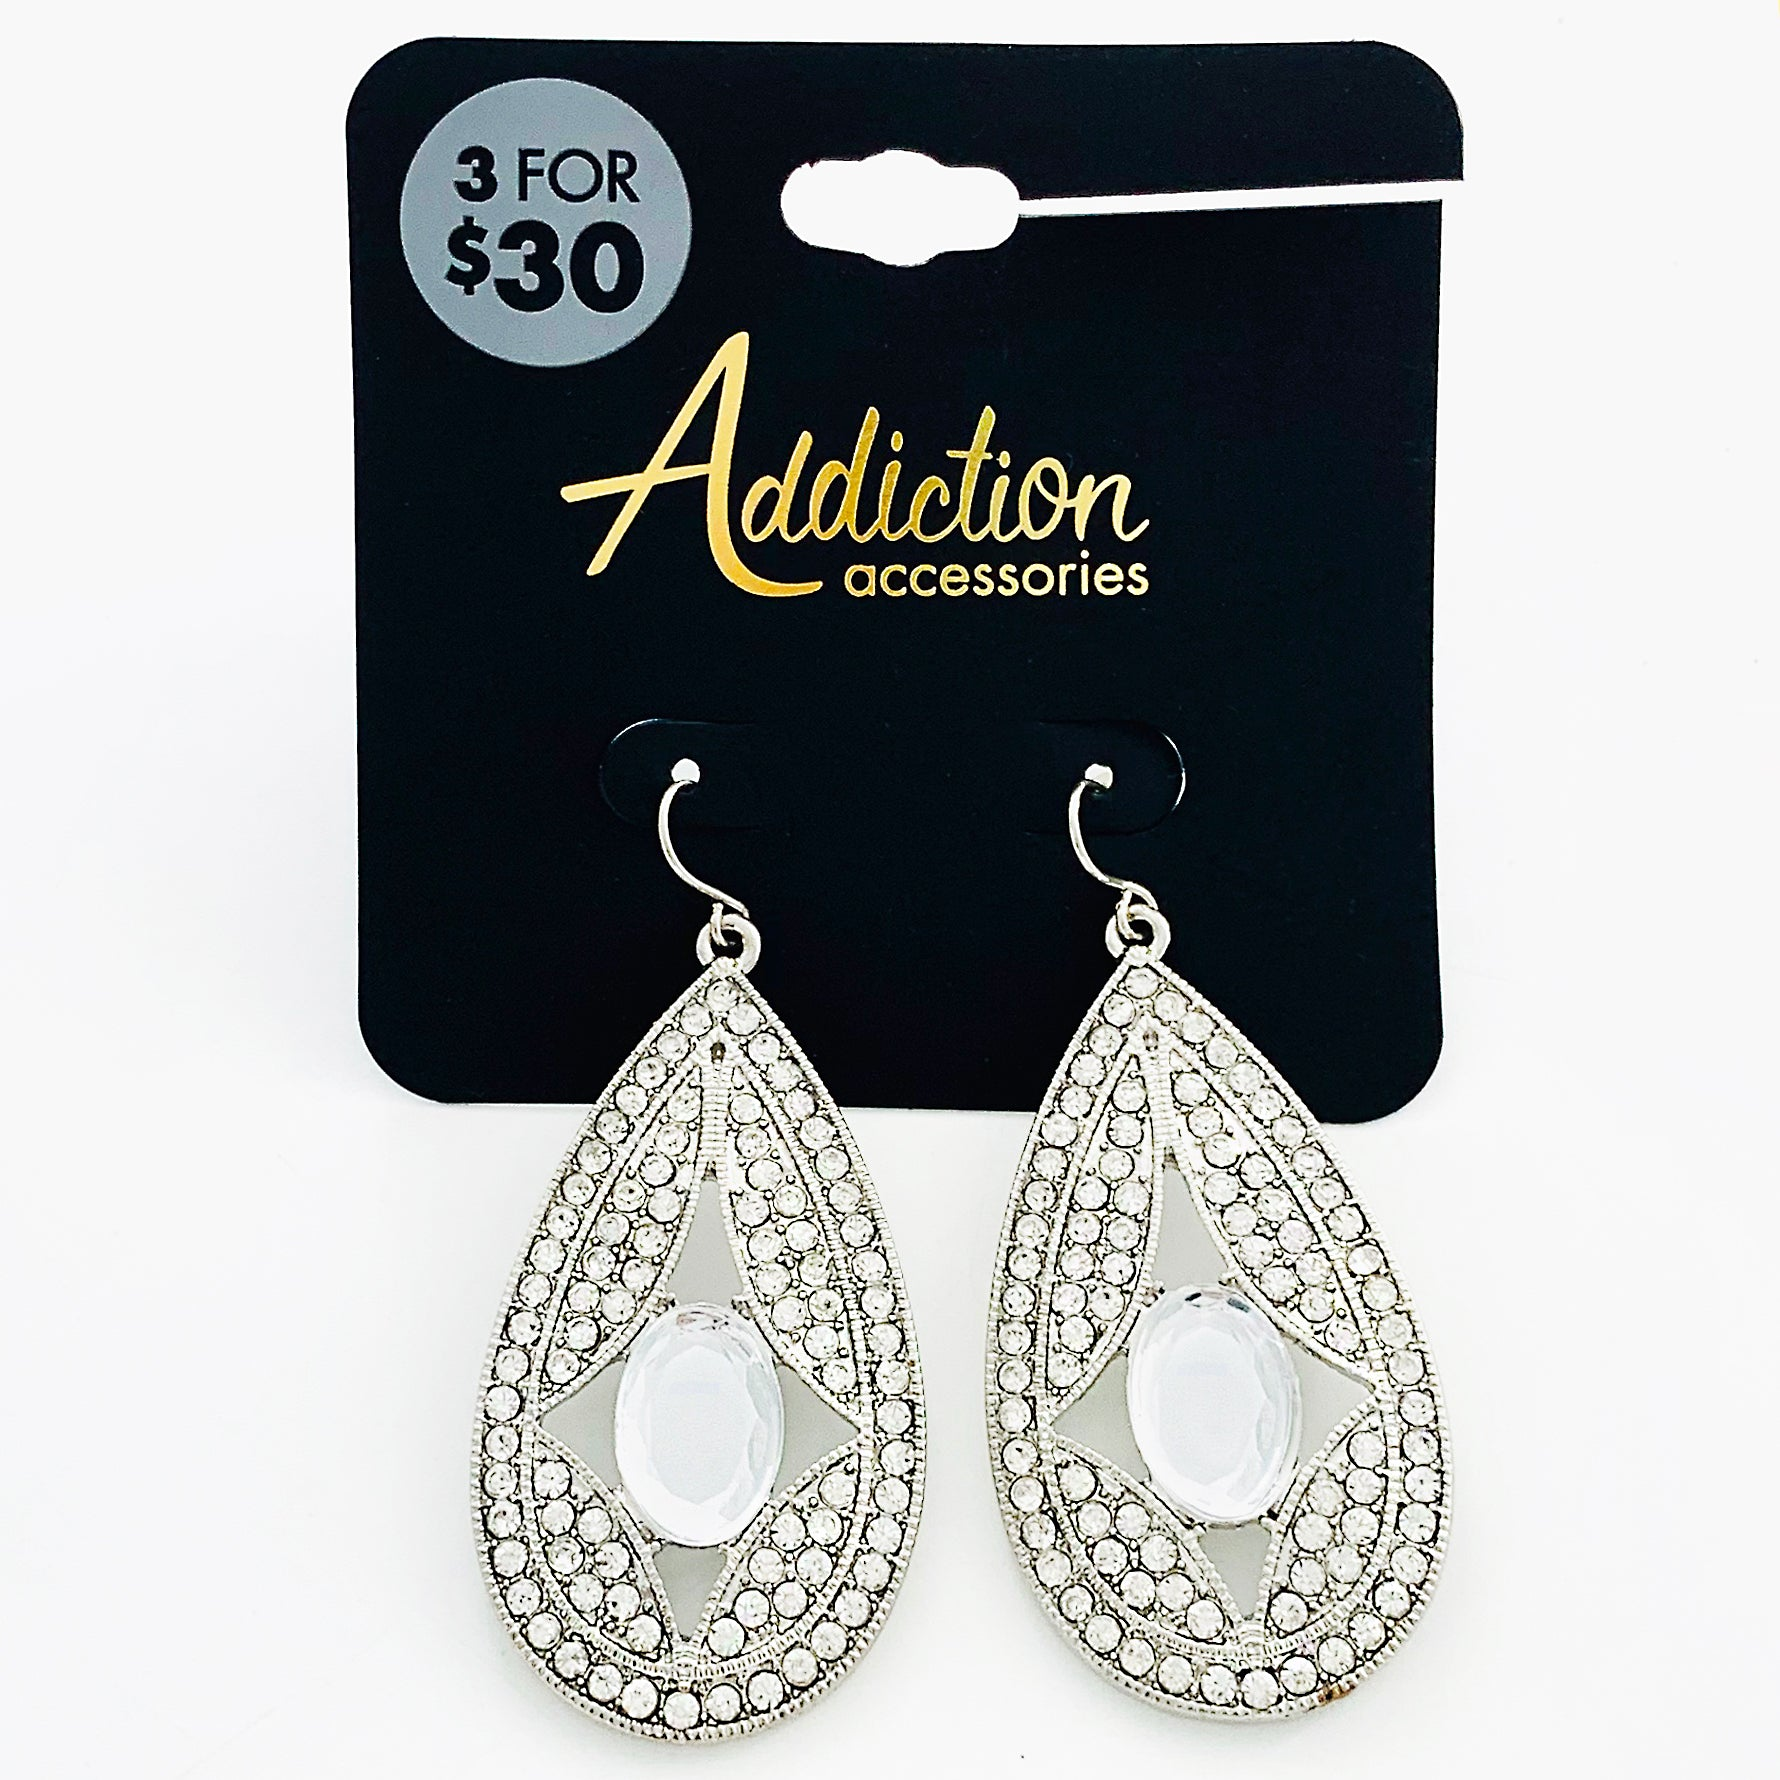 Art-deco inspired silver diamante earrings